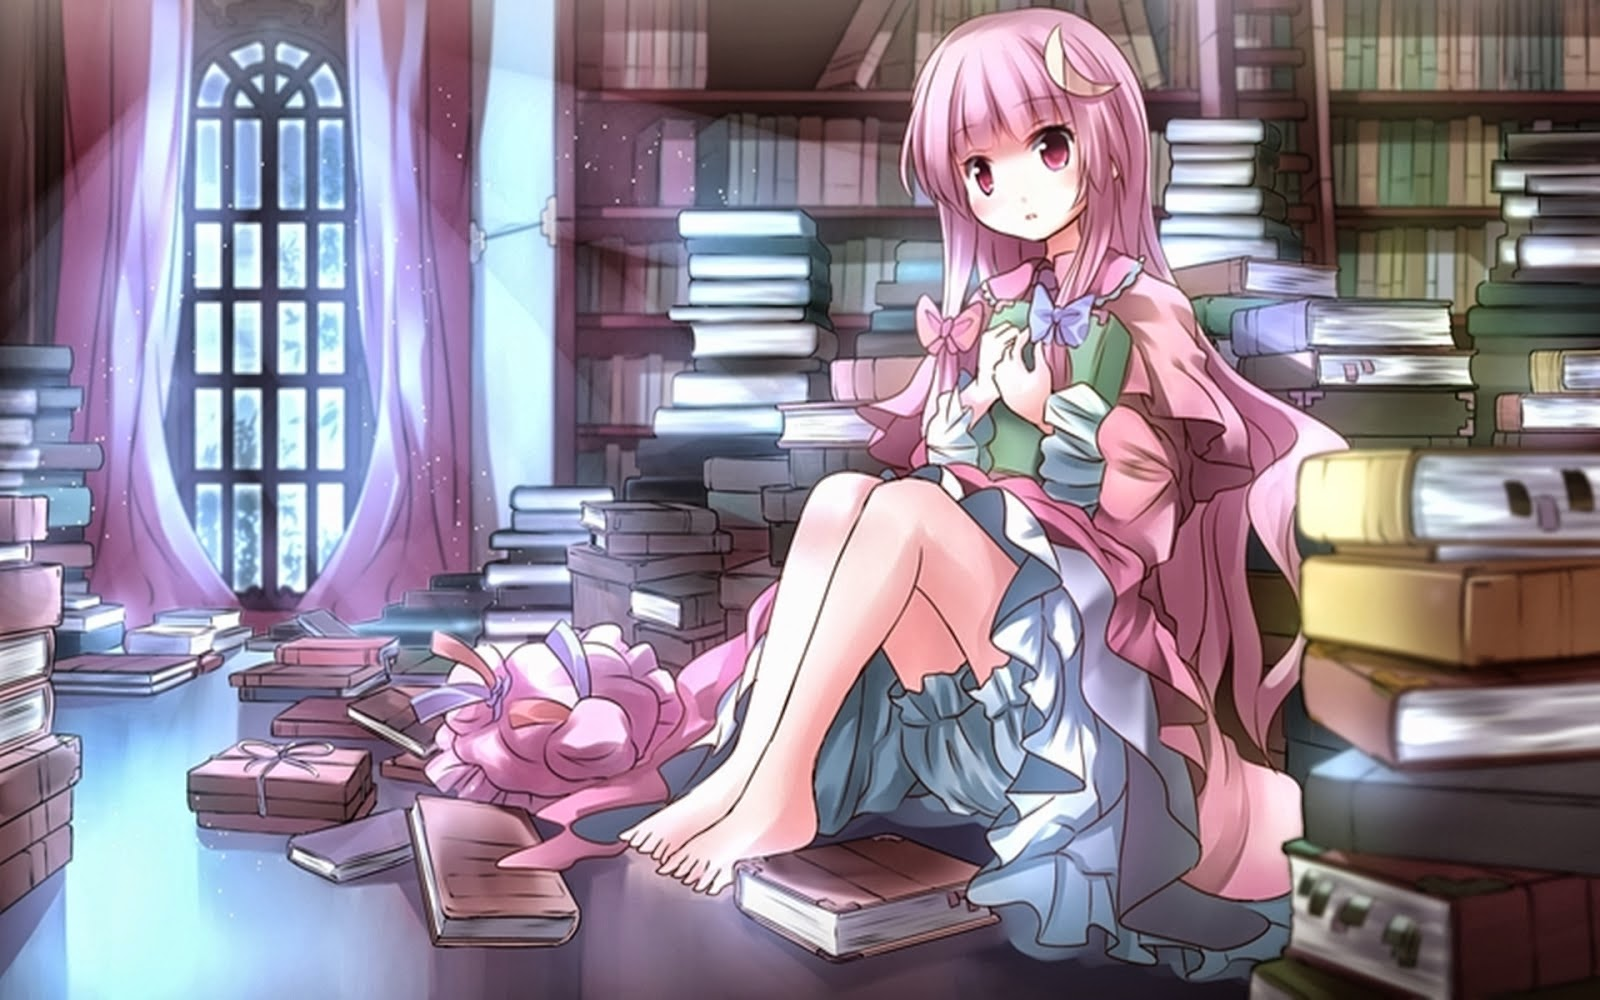 Sad Wallpaper Quotes For Girl Sad Anime Girl Facebook Cover I M So Lonely